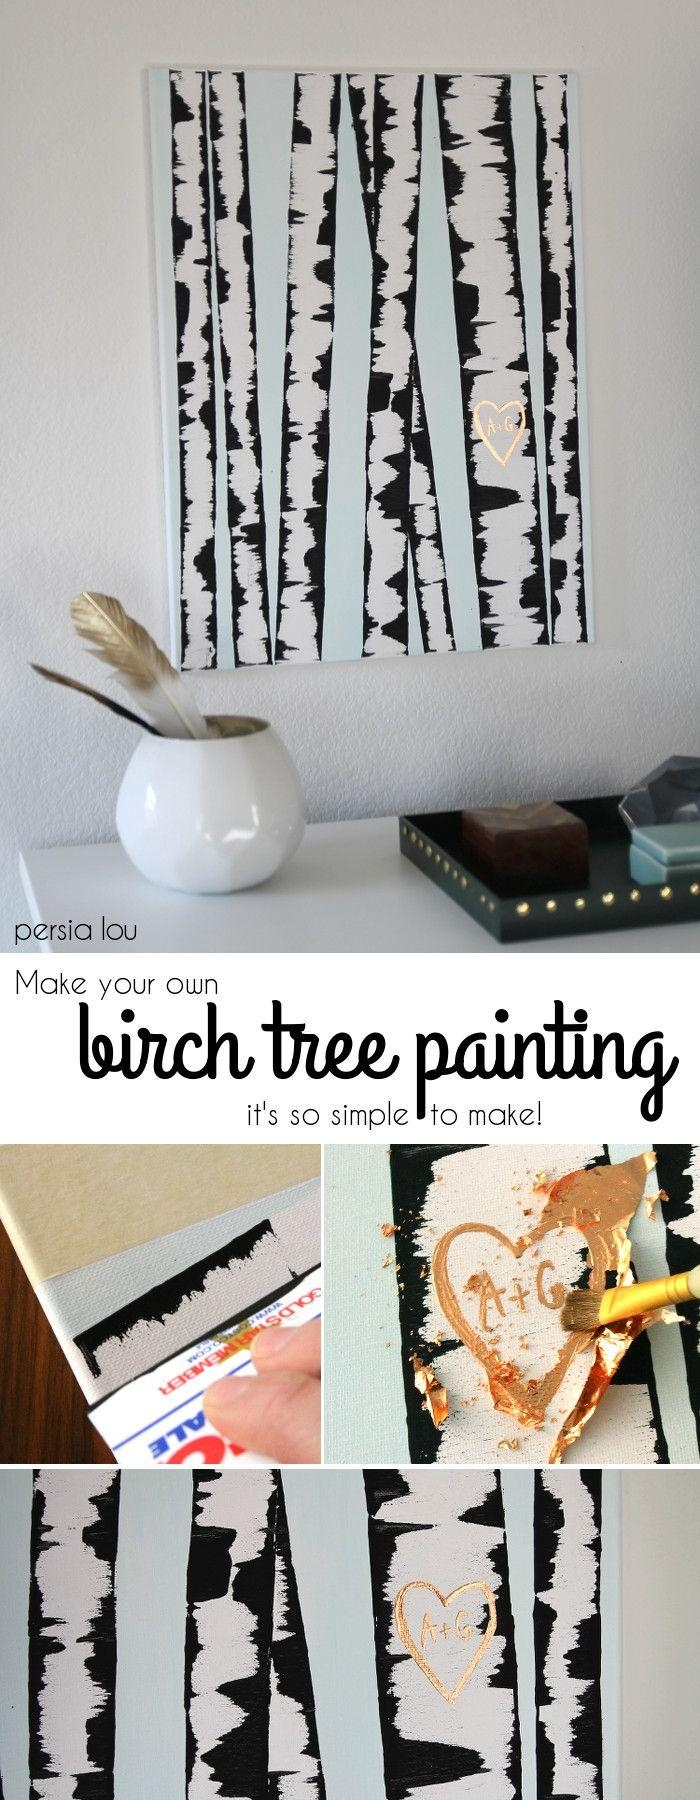 Best 25+ Homemade Wall Decorations Ideas On Pinterest | Homemade Within Ouija Board Wall Art (Image 3 of 20)